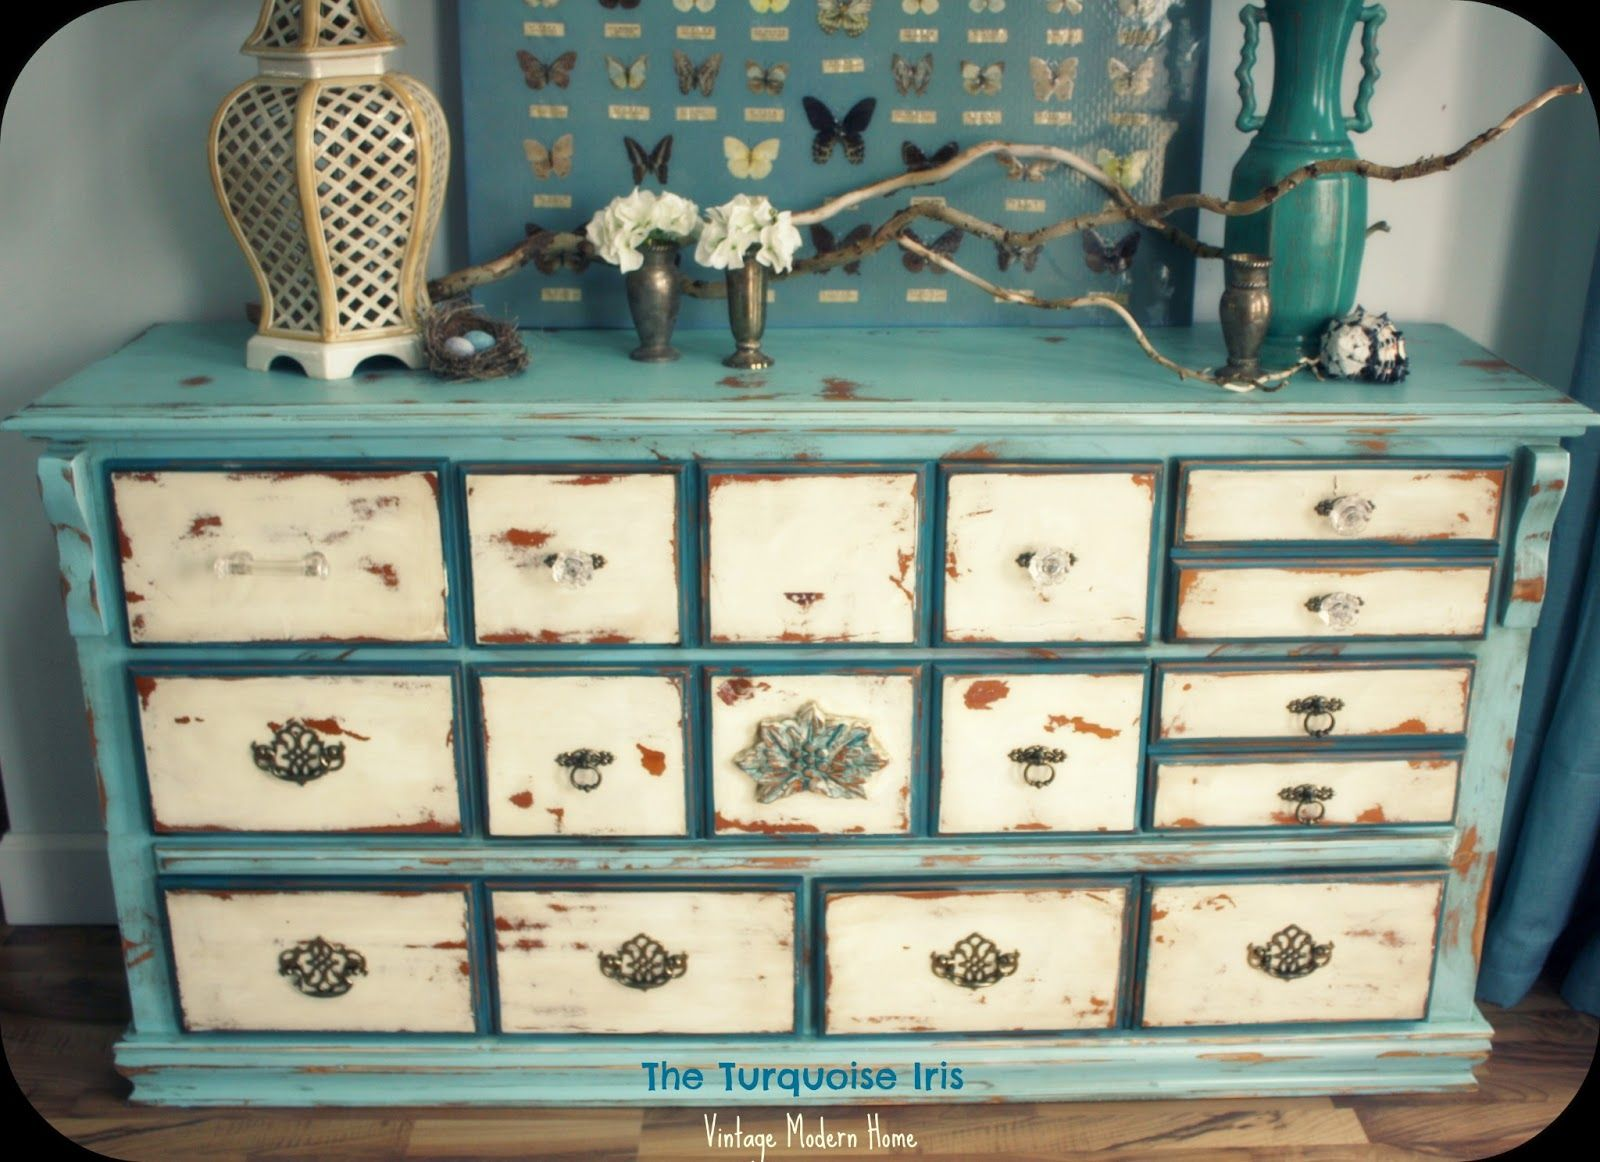 How to paint a vintage buffet home stories a to z - The Turquoise Iris Vintage Modern Home Vintage Distressed Dresser In Blue Creme